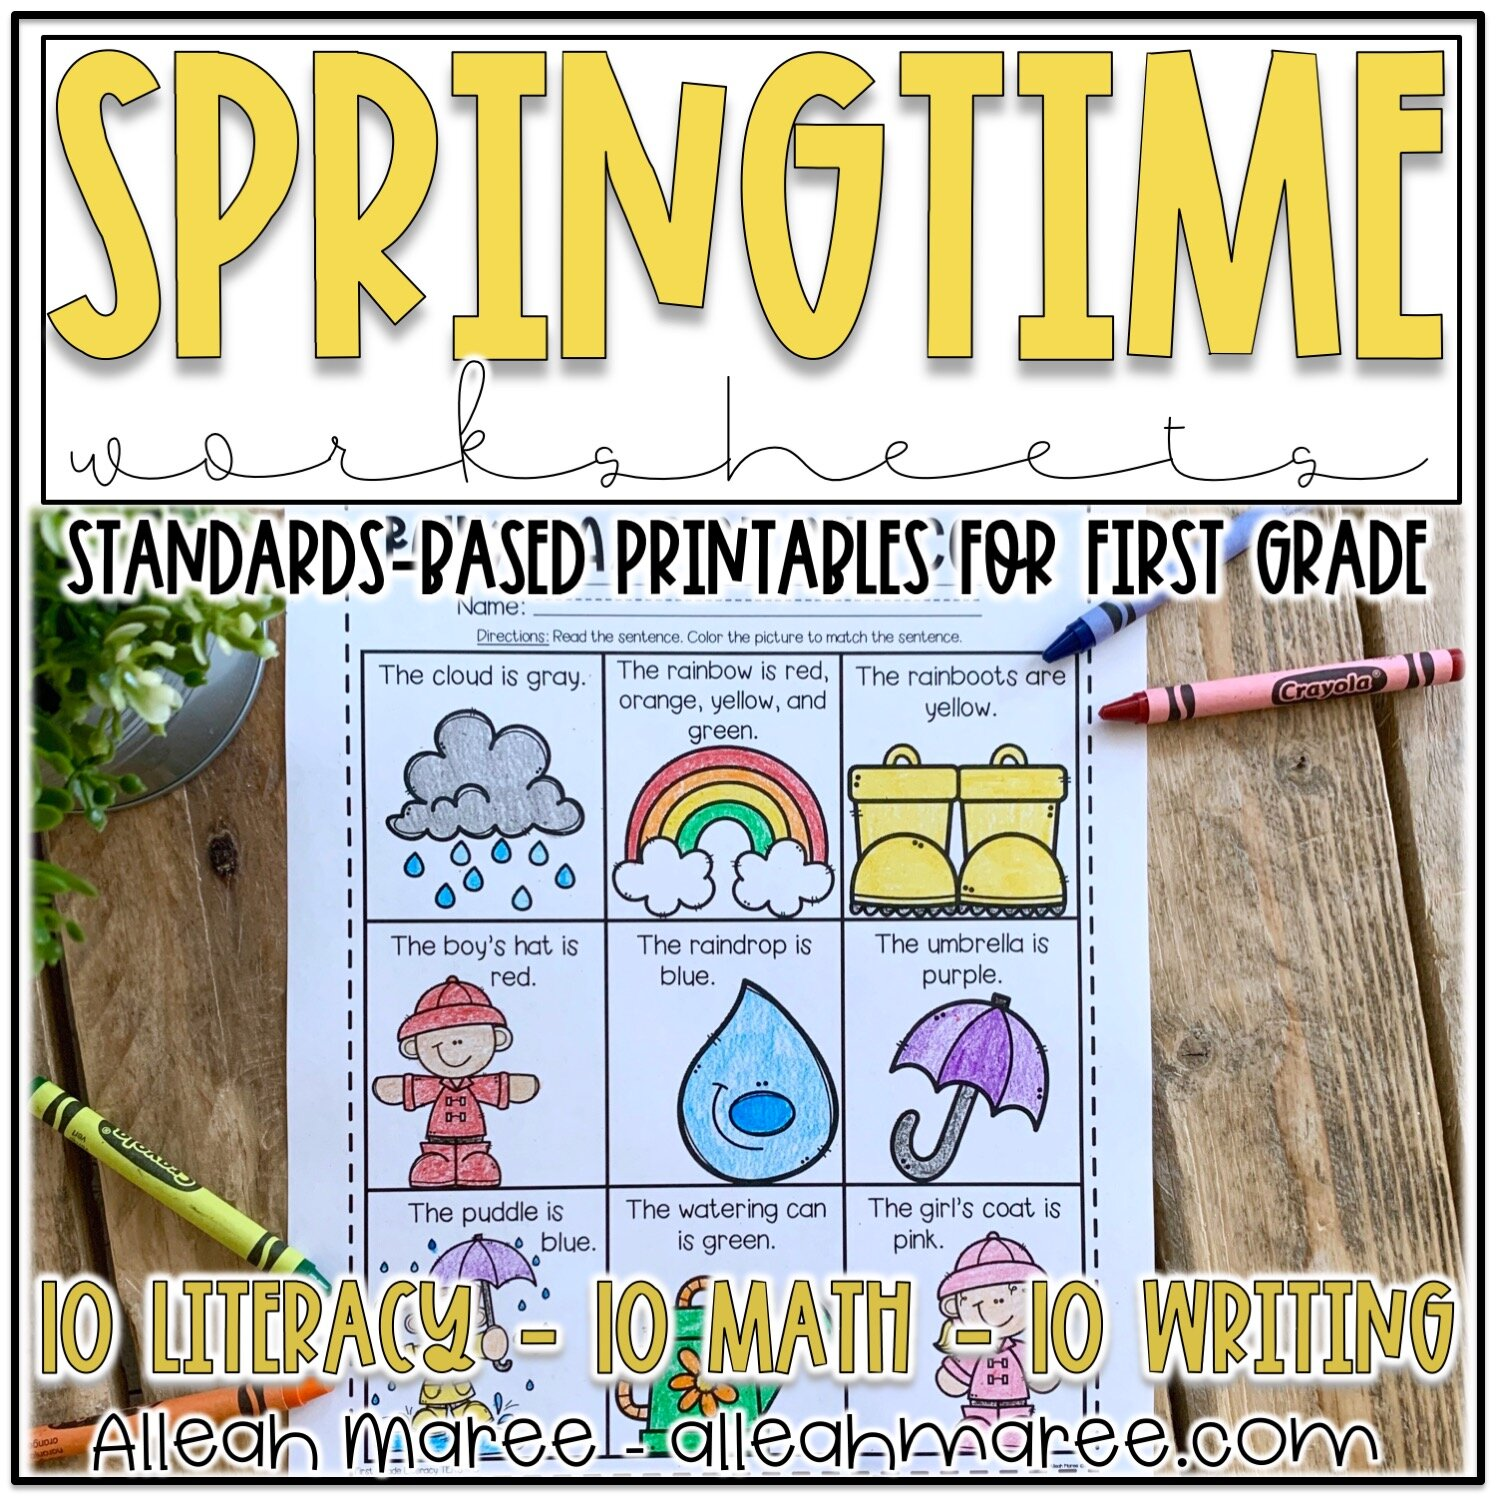 small resolution of Springtime Worksheets for First Grade: Spring Literacy and Math Printables  — Alleah Maree